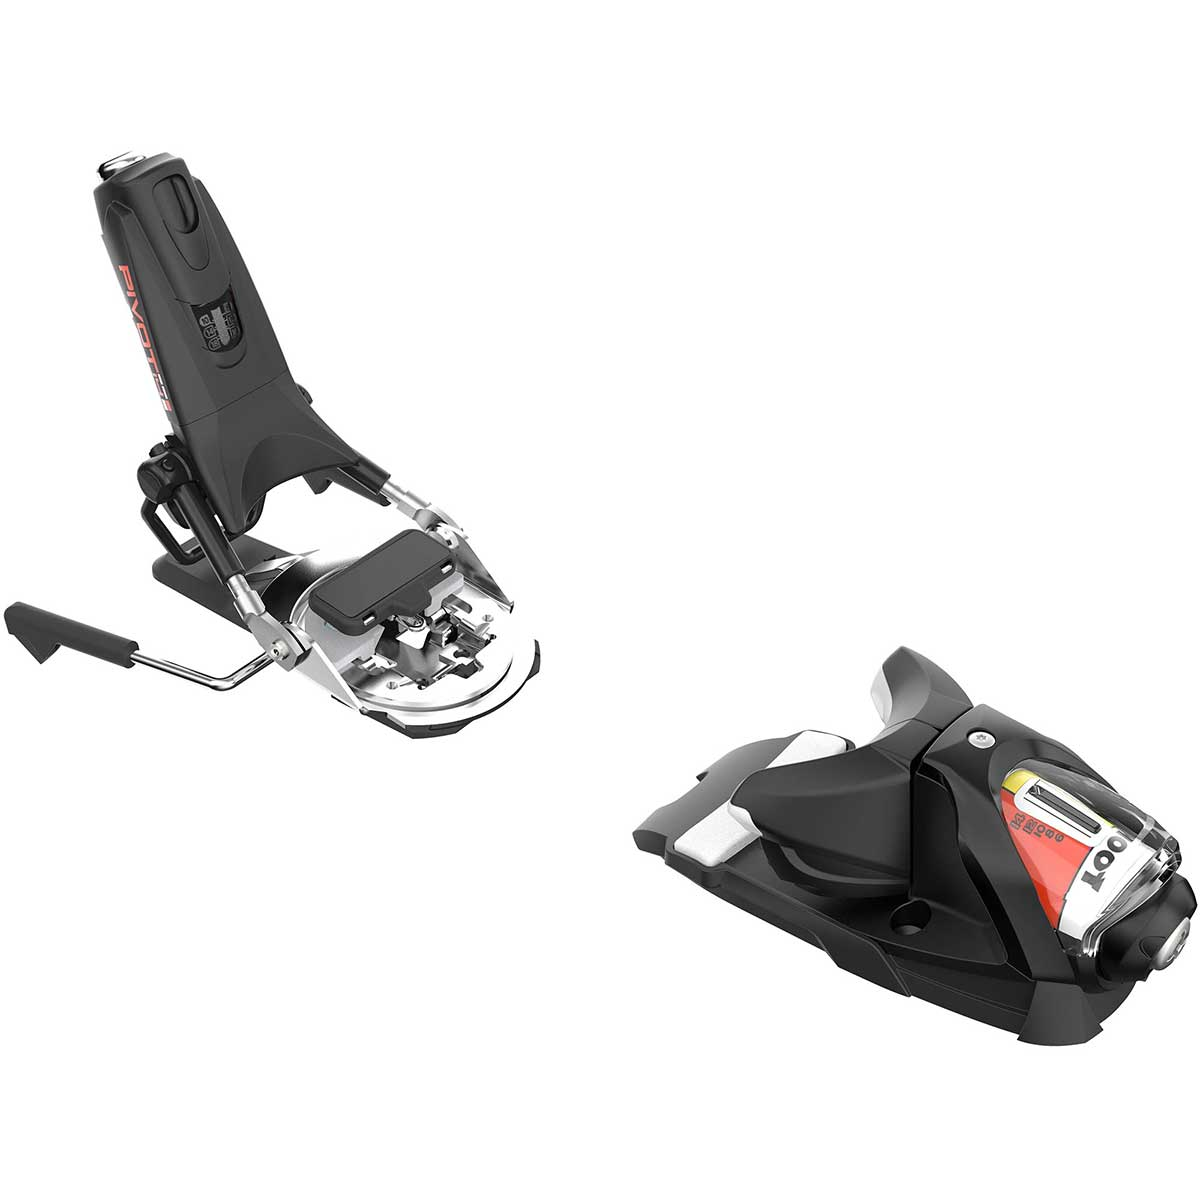 Look Pivot 12 GW ski binding in black icon